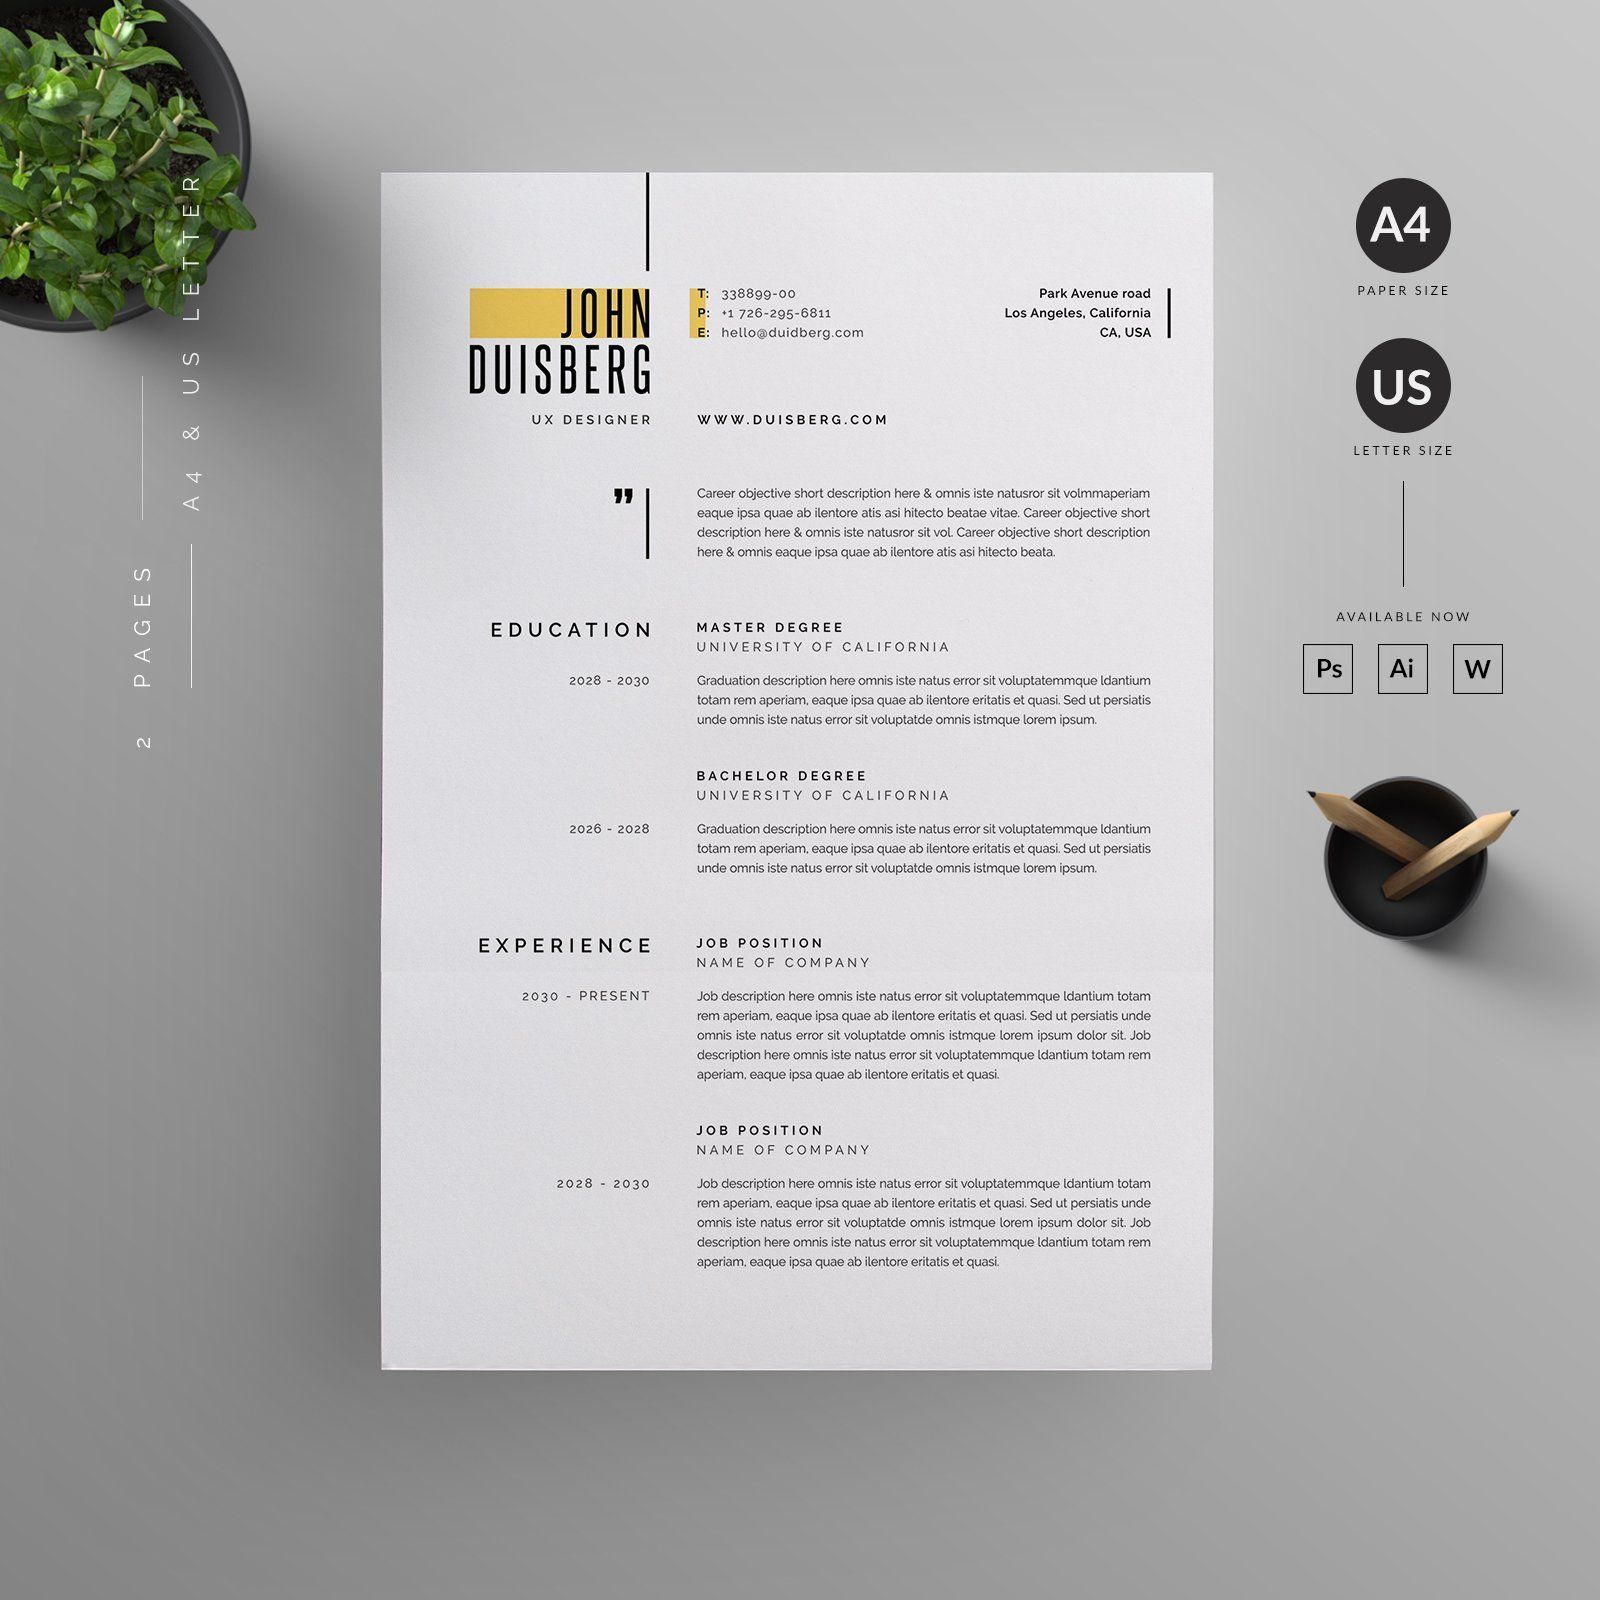 Resume CV Template Clean Modern and Professional Resume and Letterhead design Fully customizable easy to use and replace color & text Give an employer a great first impression and help you land your dream job resume branding job application cv portfolio minimal stationery professional work